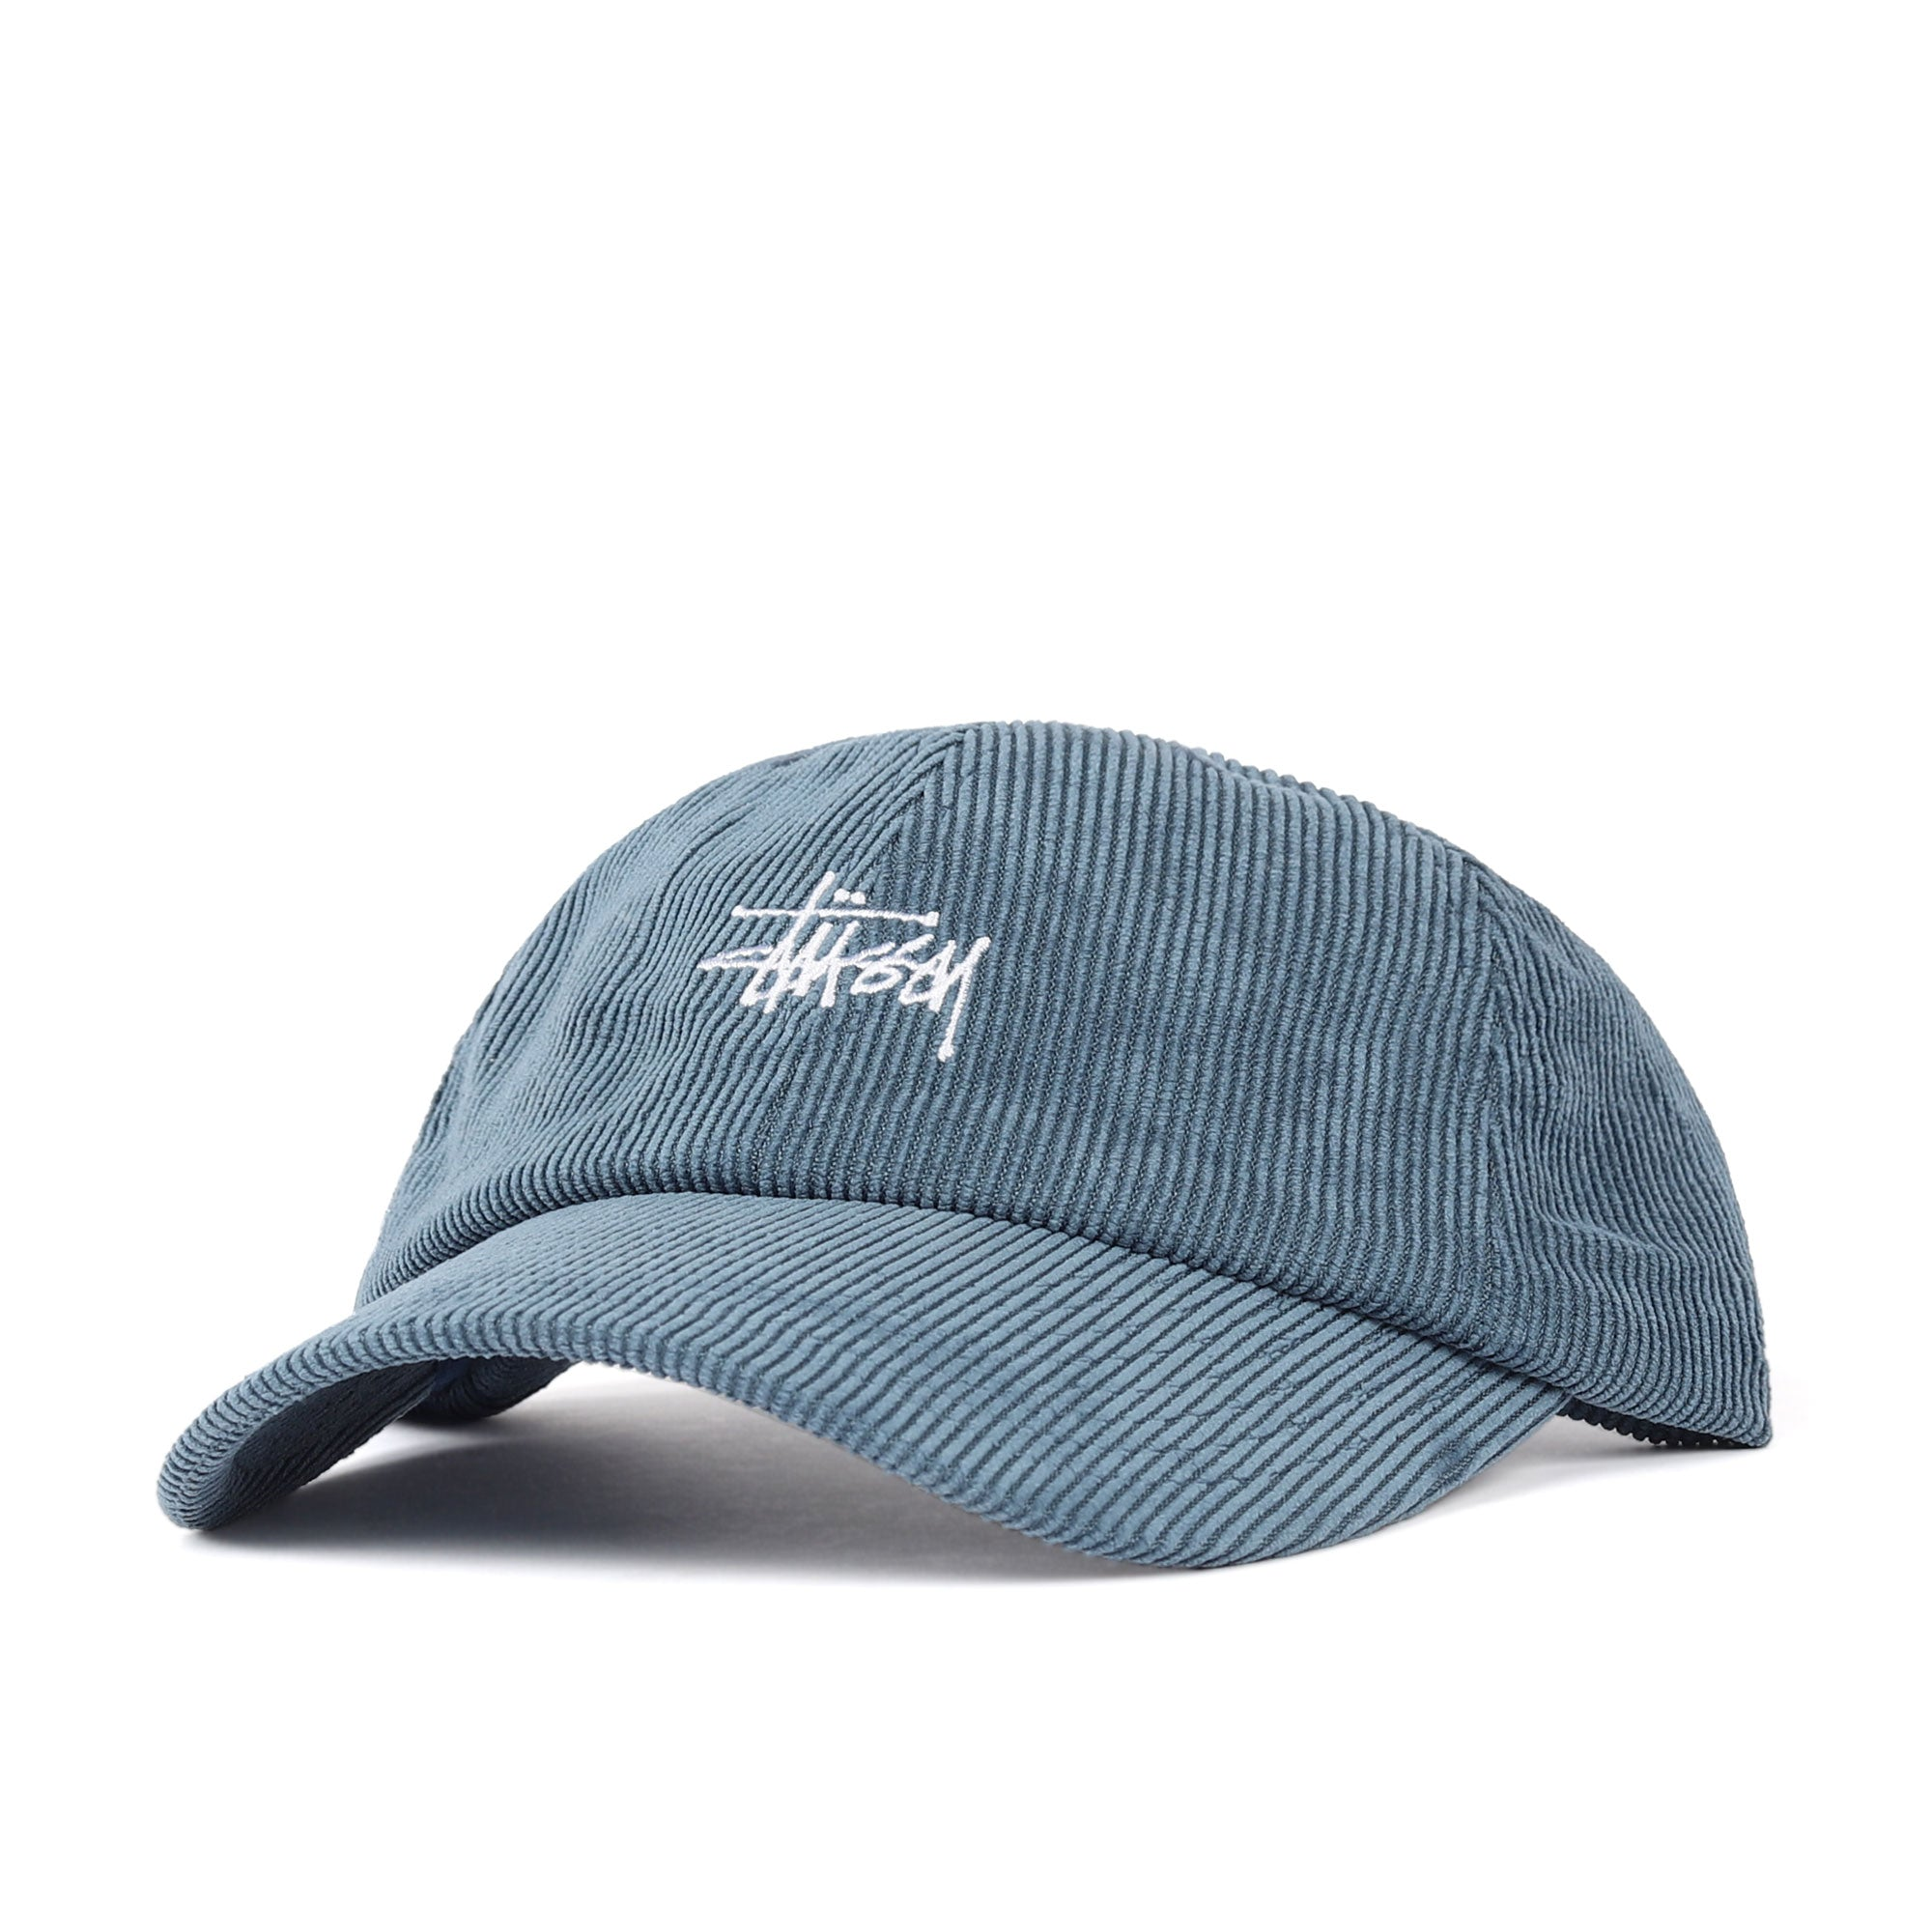 Stussy Graffiti Cord Low Pro Cap Product Photo #1